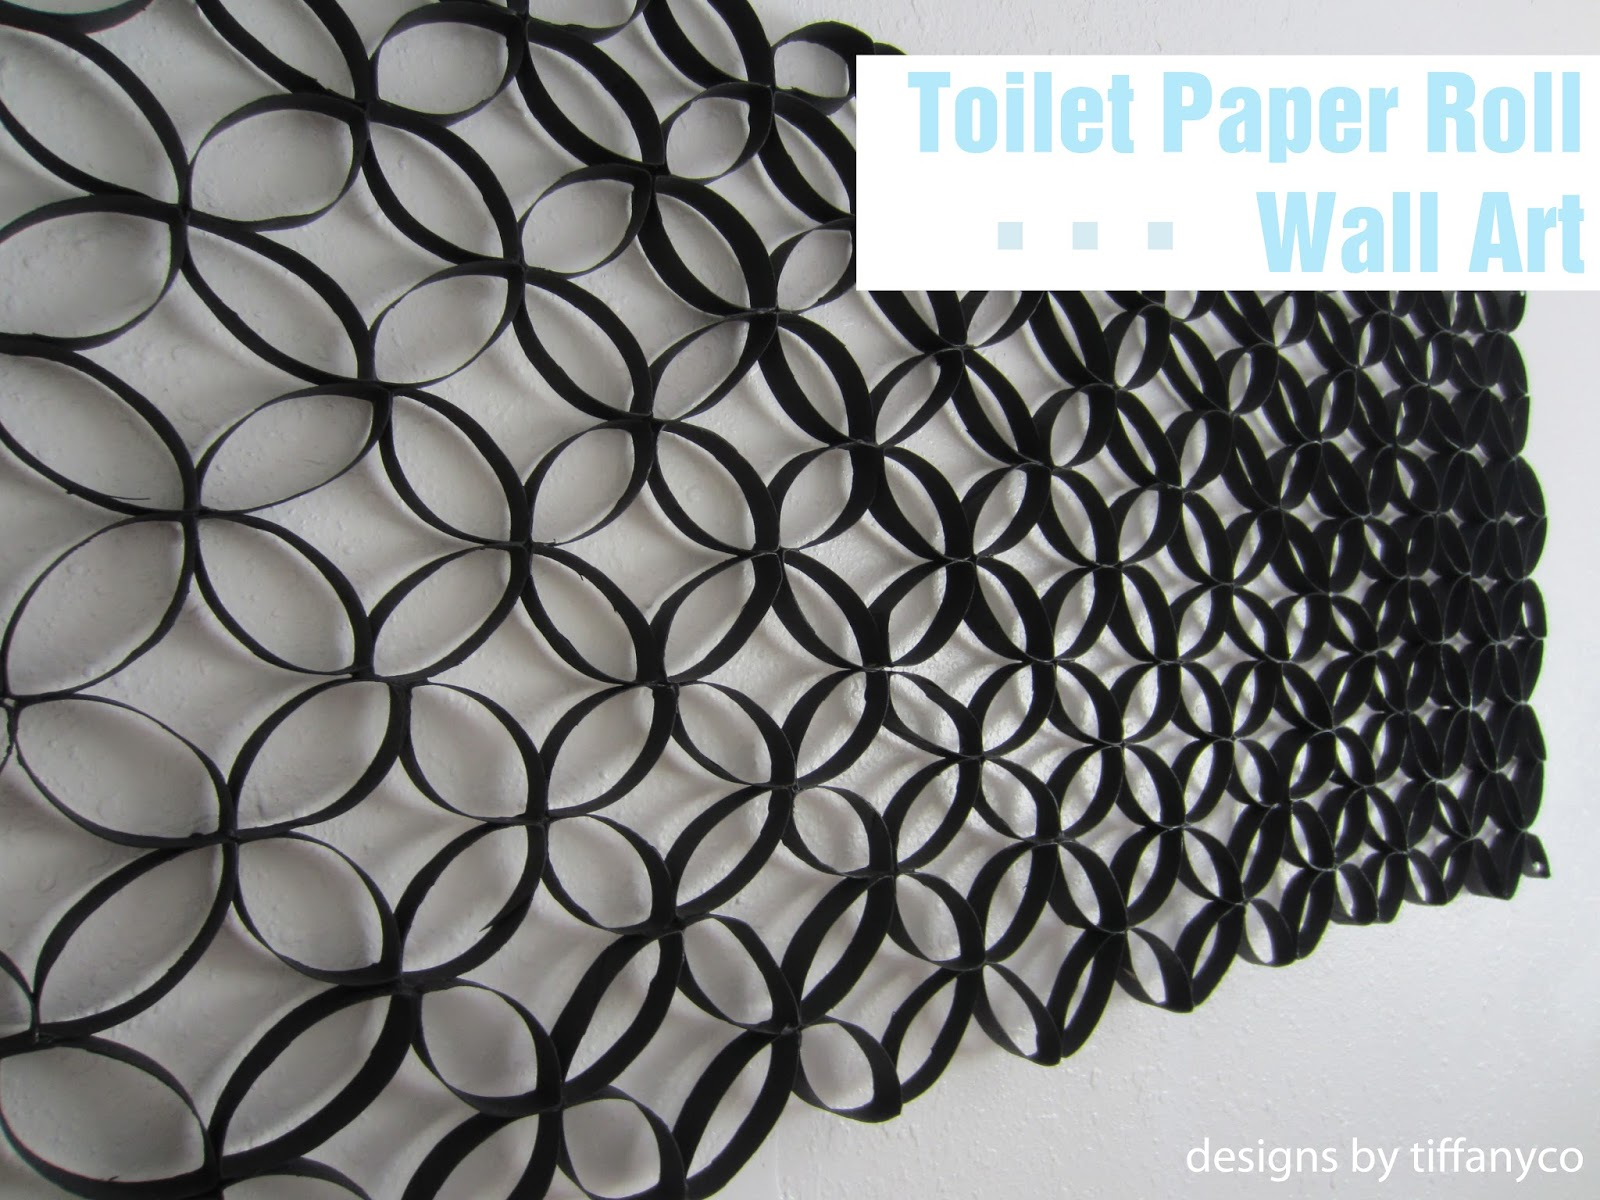 Rolled Paper Wall Art - Inarace.net